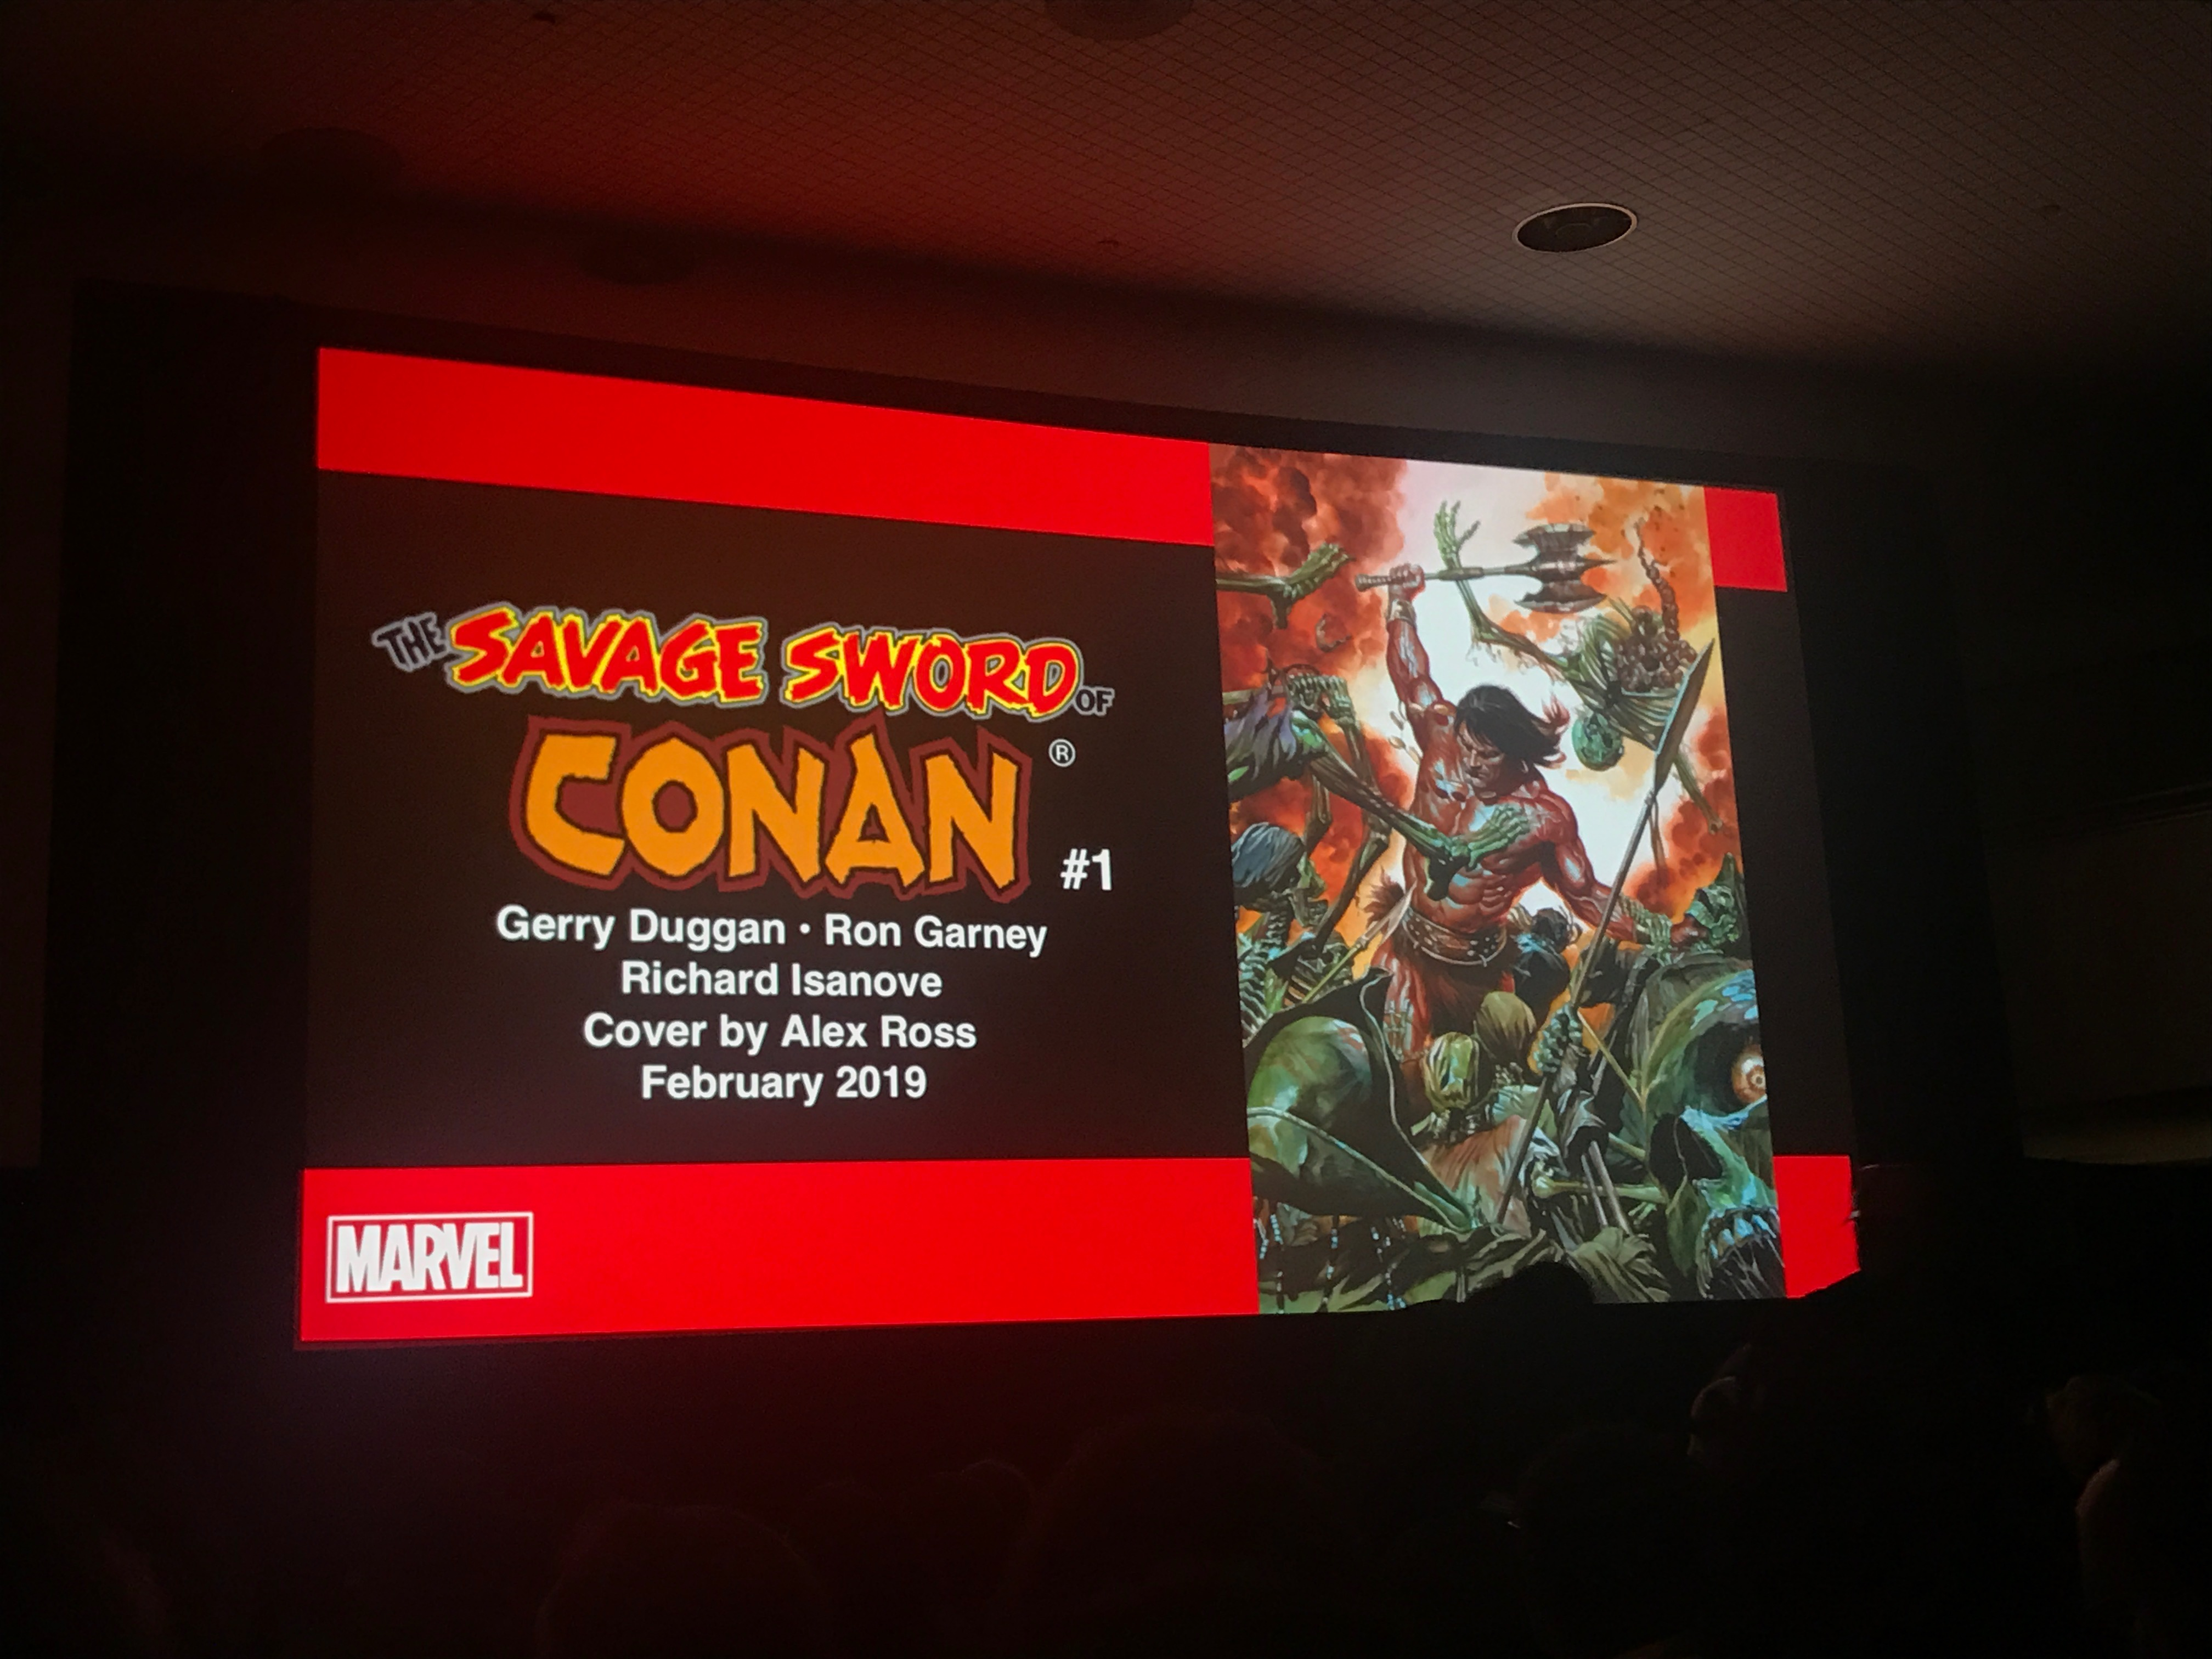 With the looming finale ofInfinity Wars, many readers wonder where Gerry Duggan's tenure with Marvel would go next. Wonder no more, as Marvel unveiledSavage Sword of Conan at New York Comic Con, written by Gerry Duggan and drawn by Ron Garney with covers by Alex Ross.